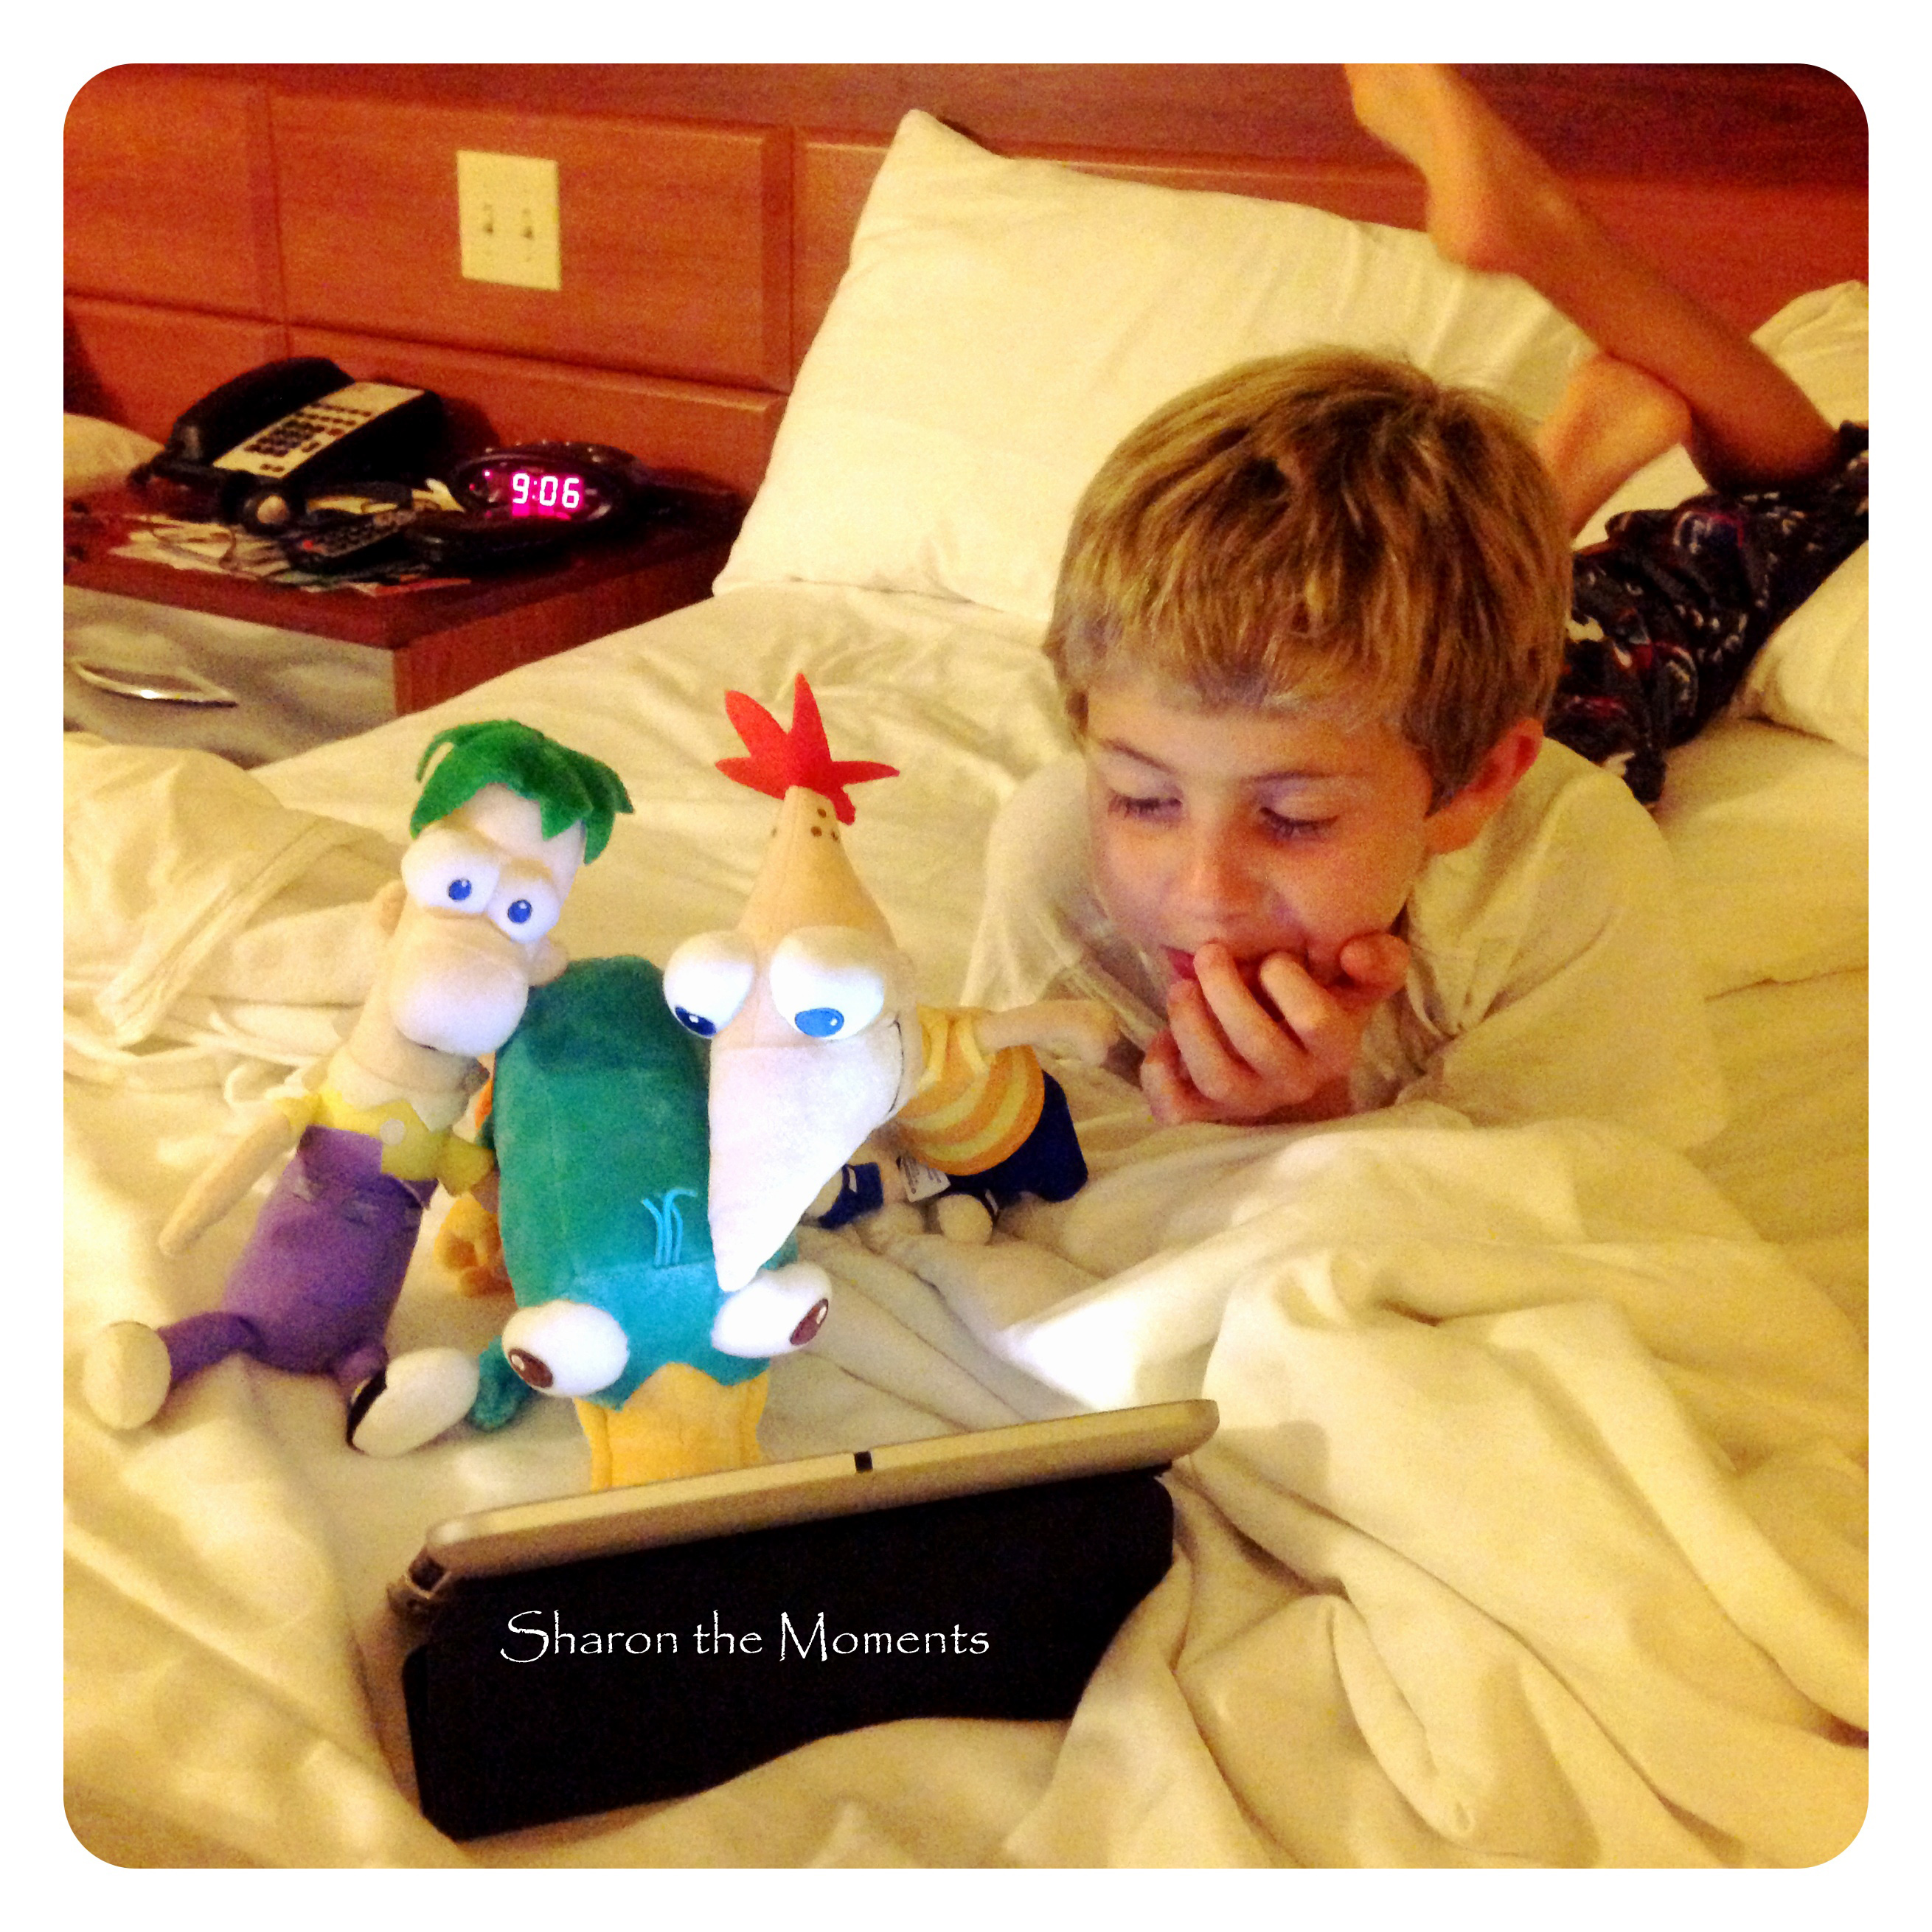 Walt Disney World Phineas and Ferb|Sharon the Moments Blog